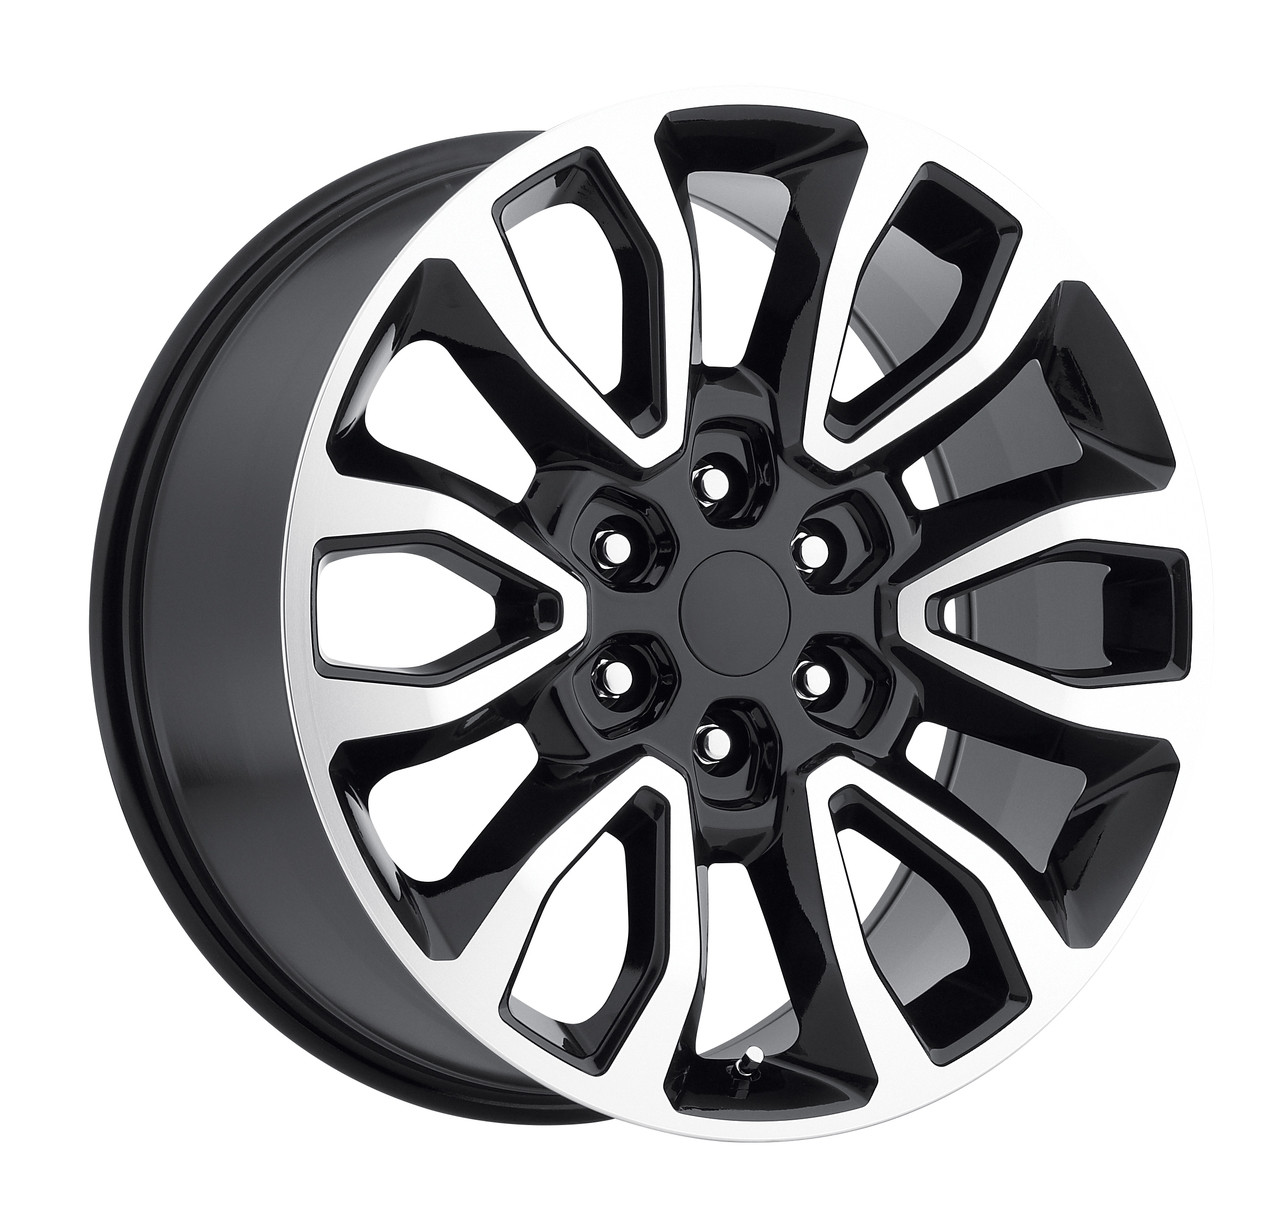 20 fits ford f150 6 lug wheels black machined face raptor style set of